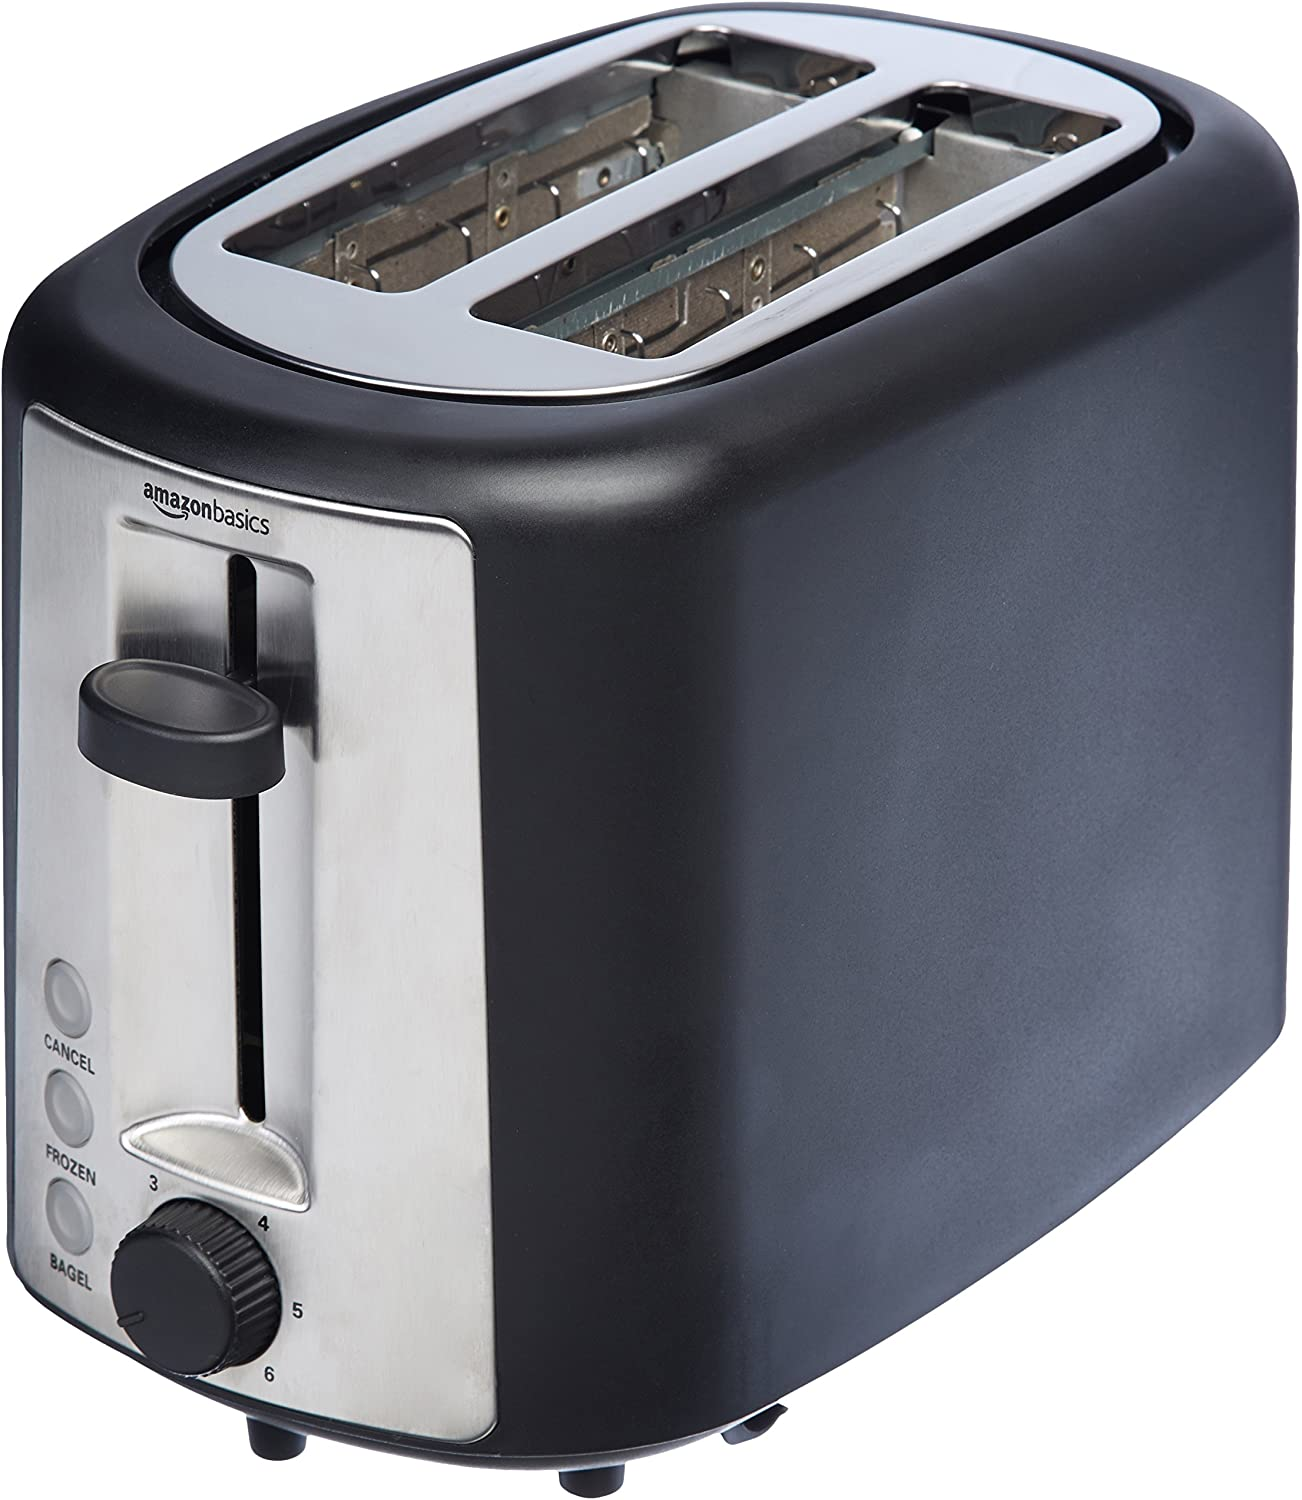 AmazonBasics 2-Slice Extra-Wide Slot Toaster